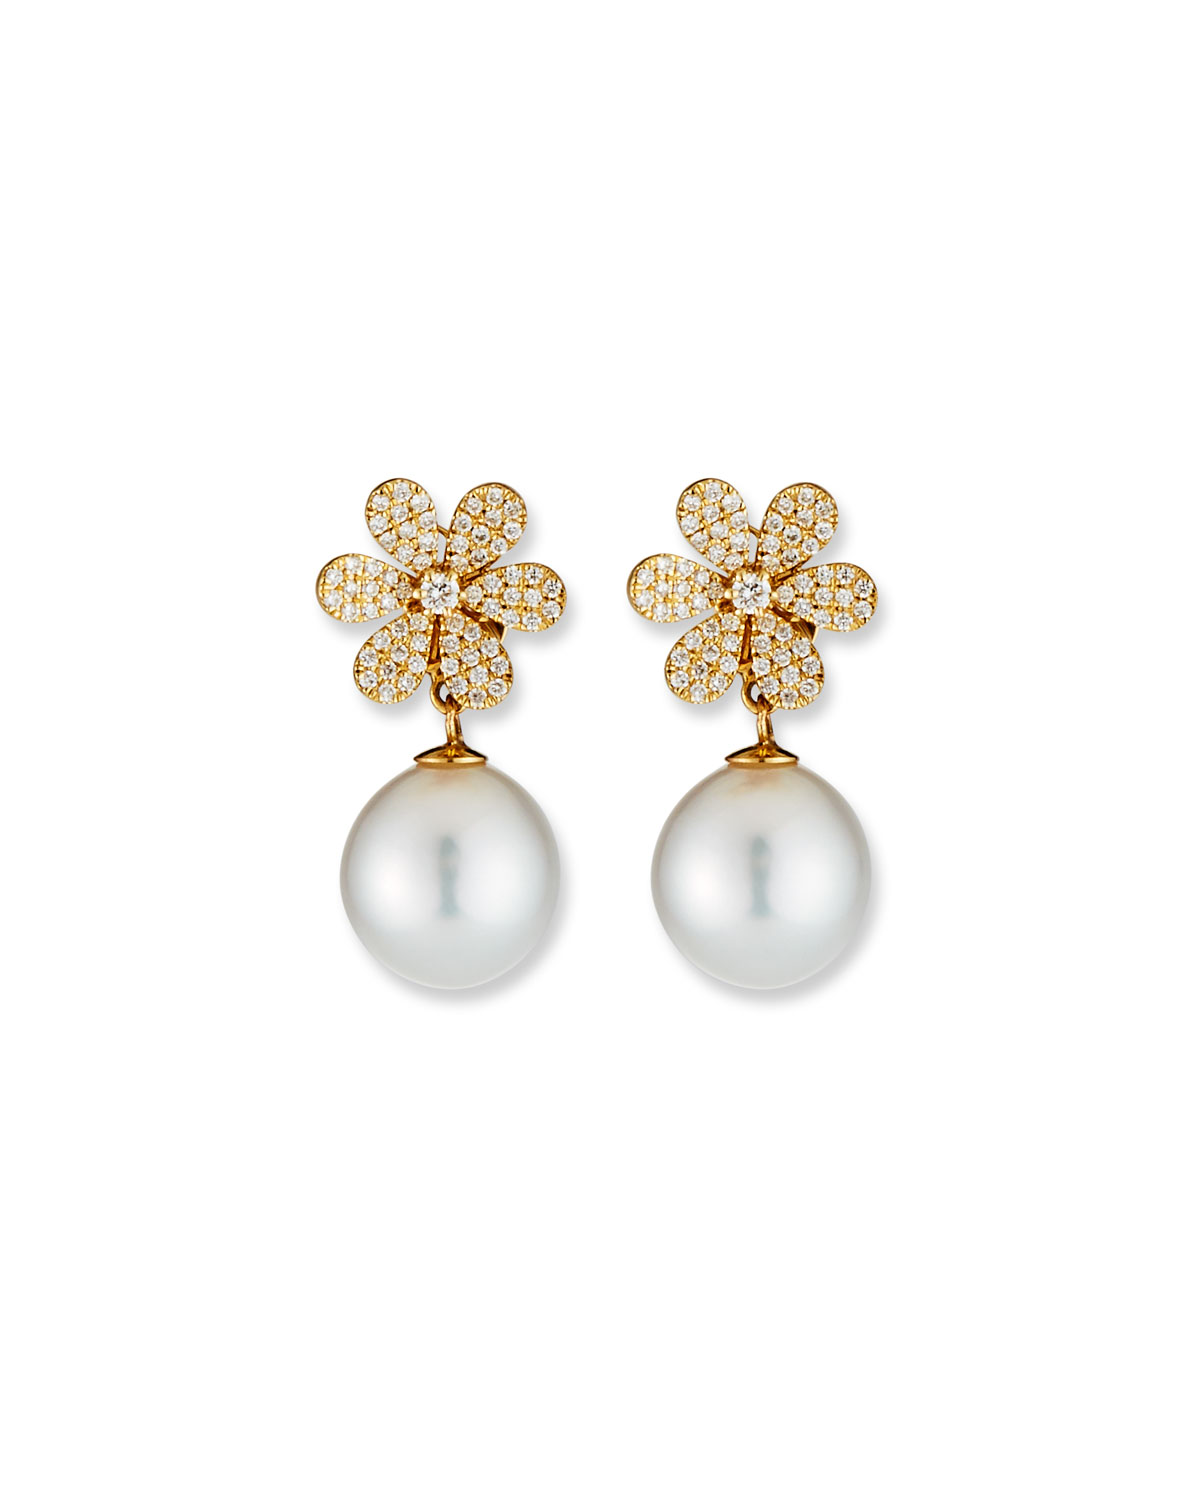 Belpearl 18k Diamond-Daisy Pearl-Drop Earrings